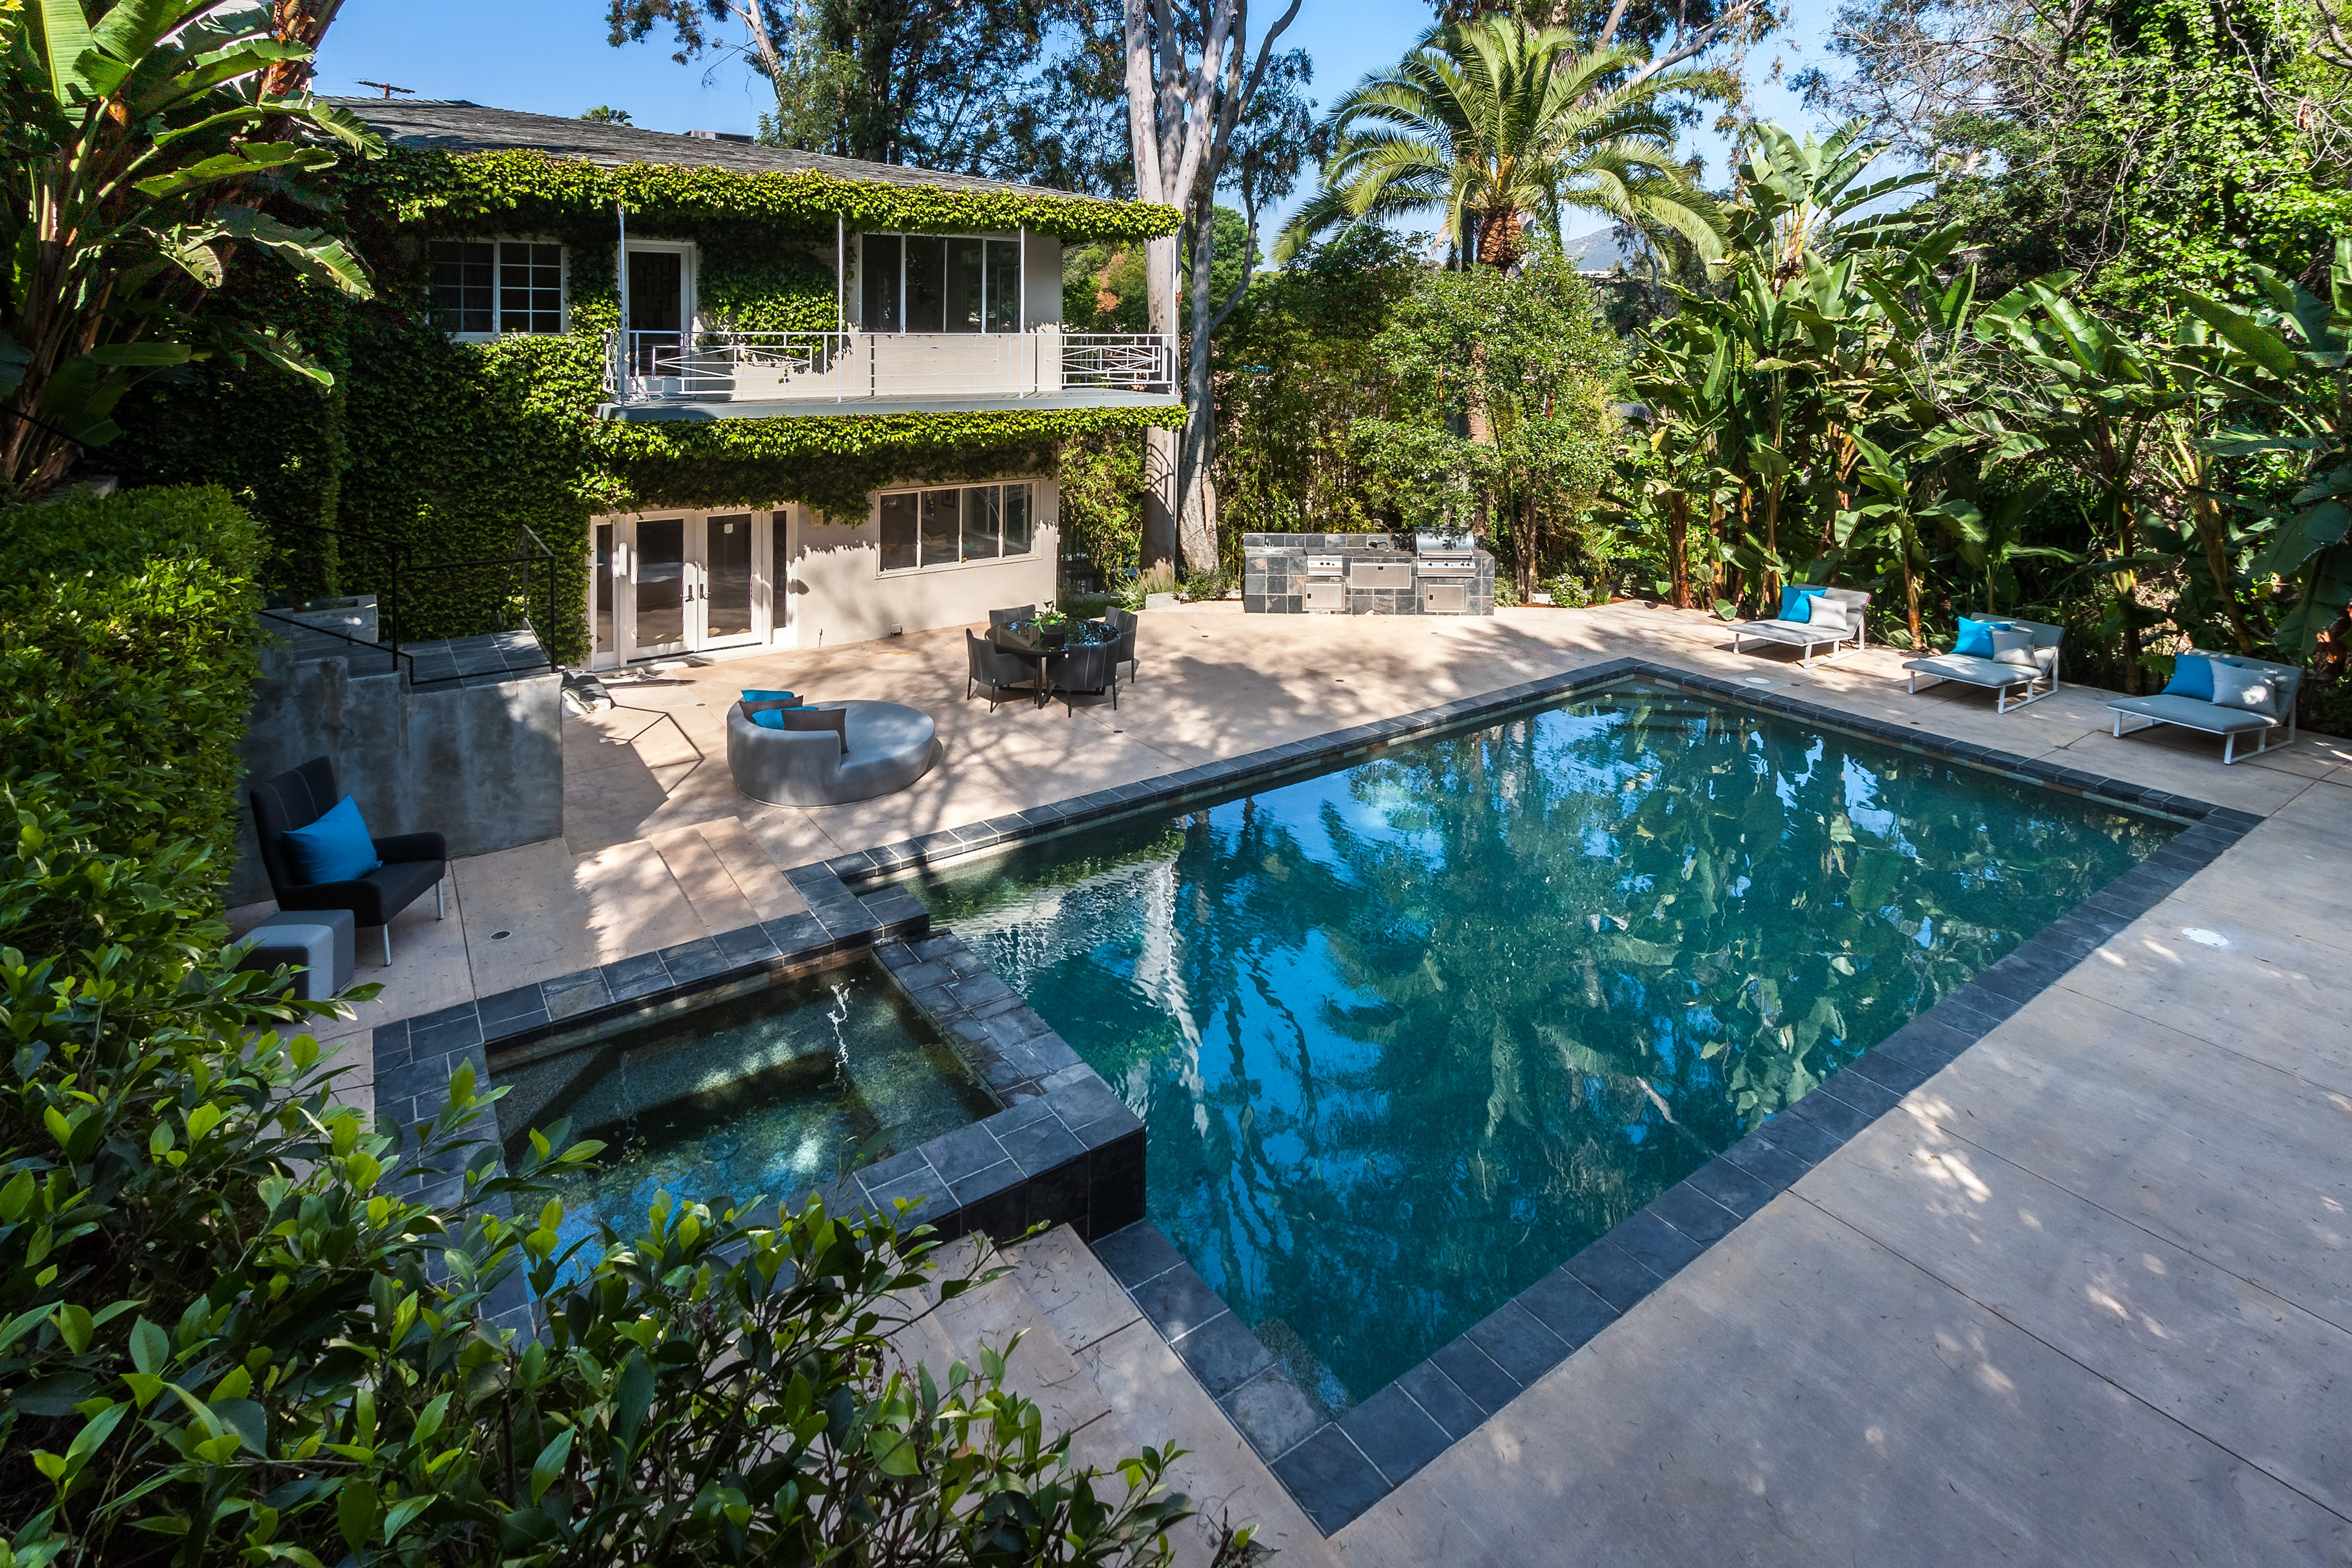 A photo of the lush backyard of the house Jared Leto just sold.